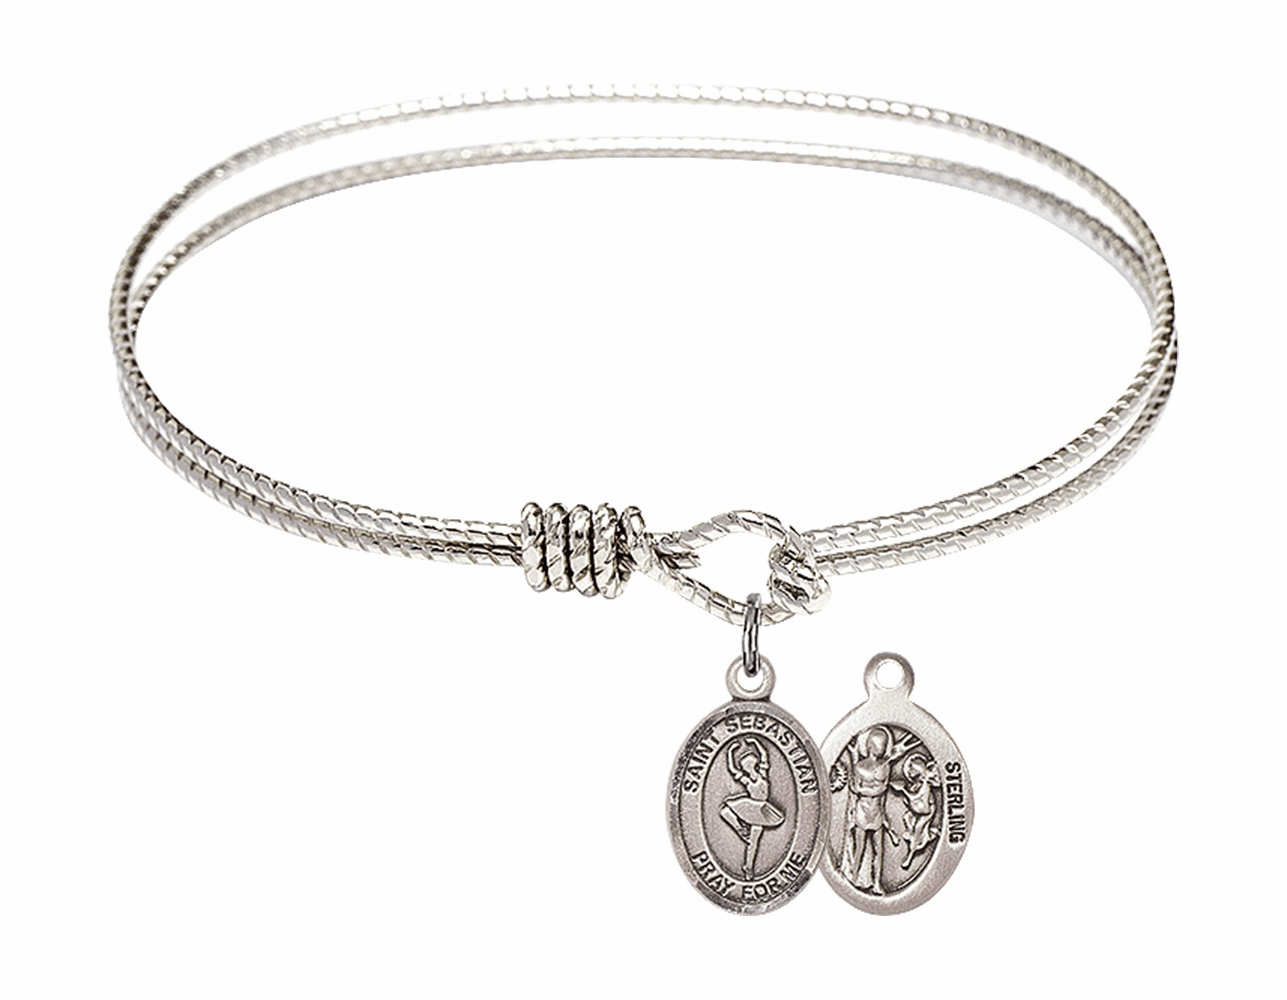 Twist Round Eye Hook St Sebastian Dance Bangle Charm Bracelet by Bliss